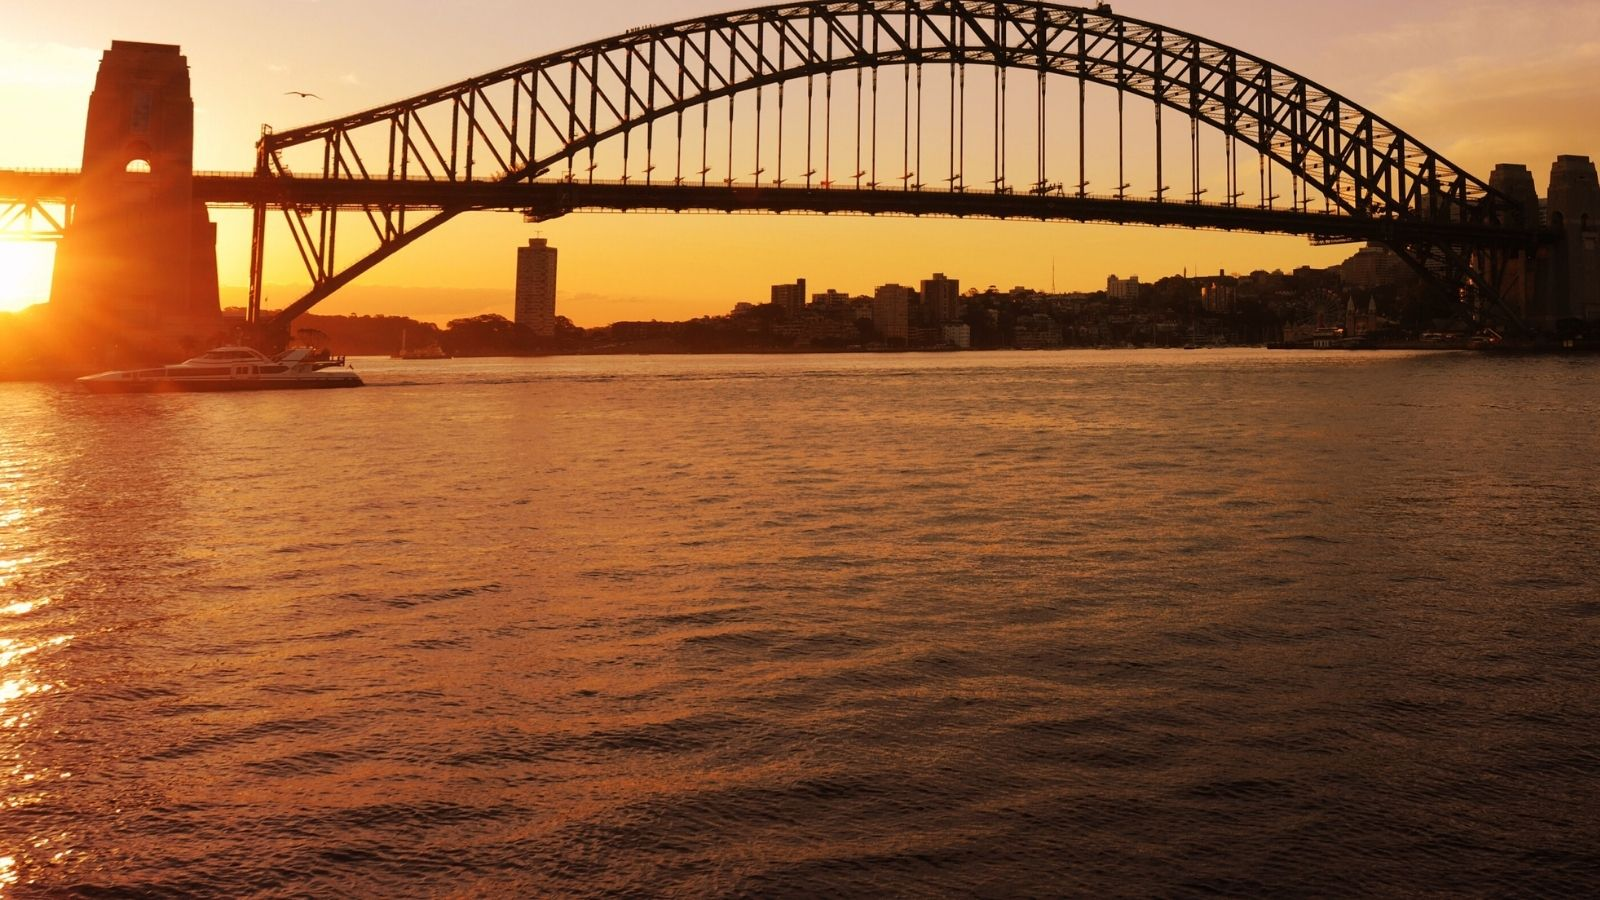 Sunset behind the iconic Sydney Harbour Bridge, Sydney, NSW, Australia